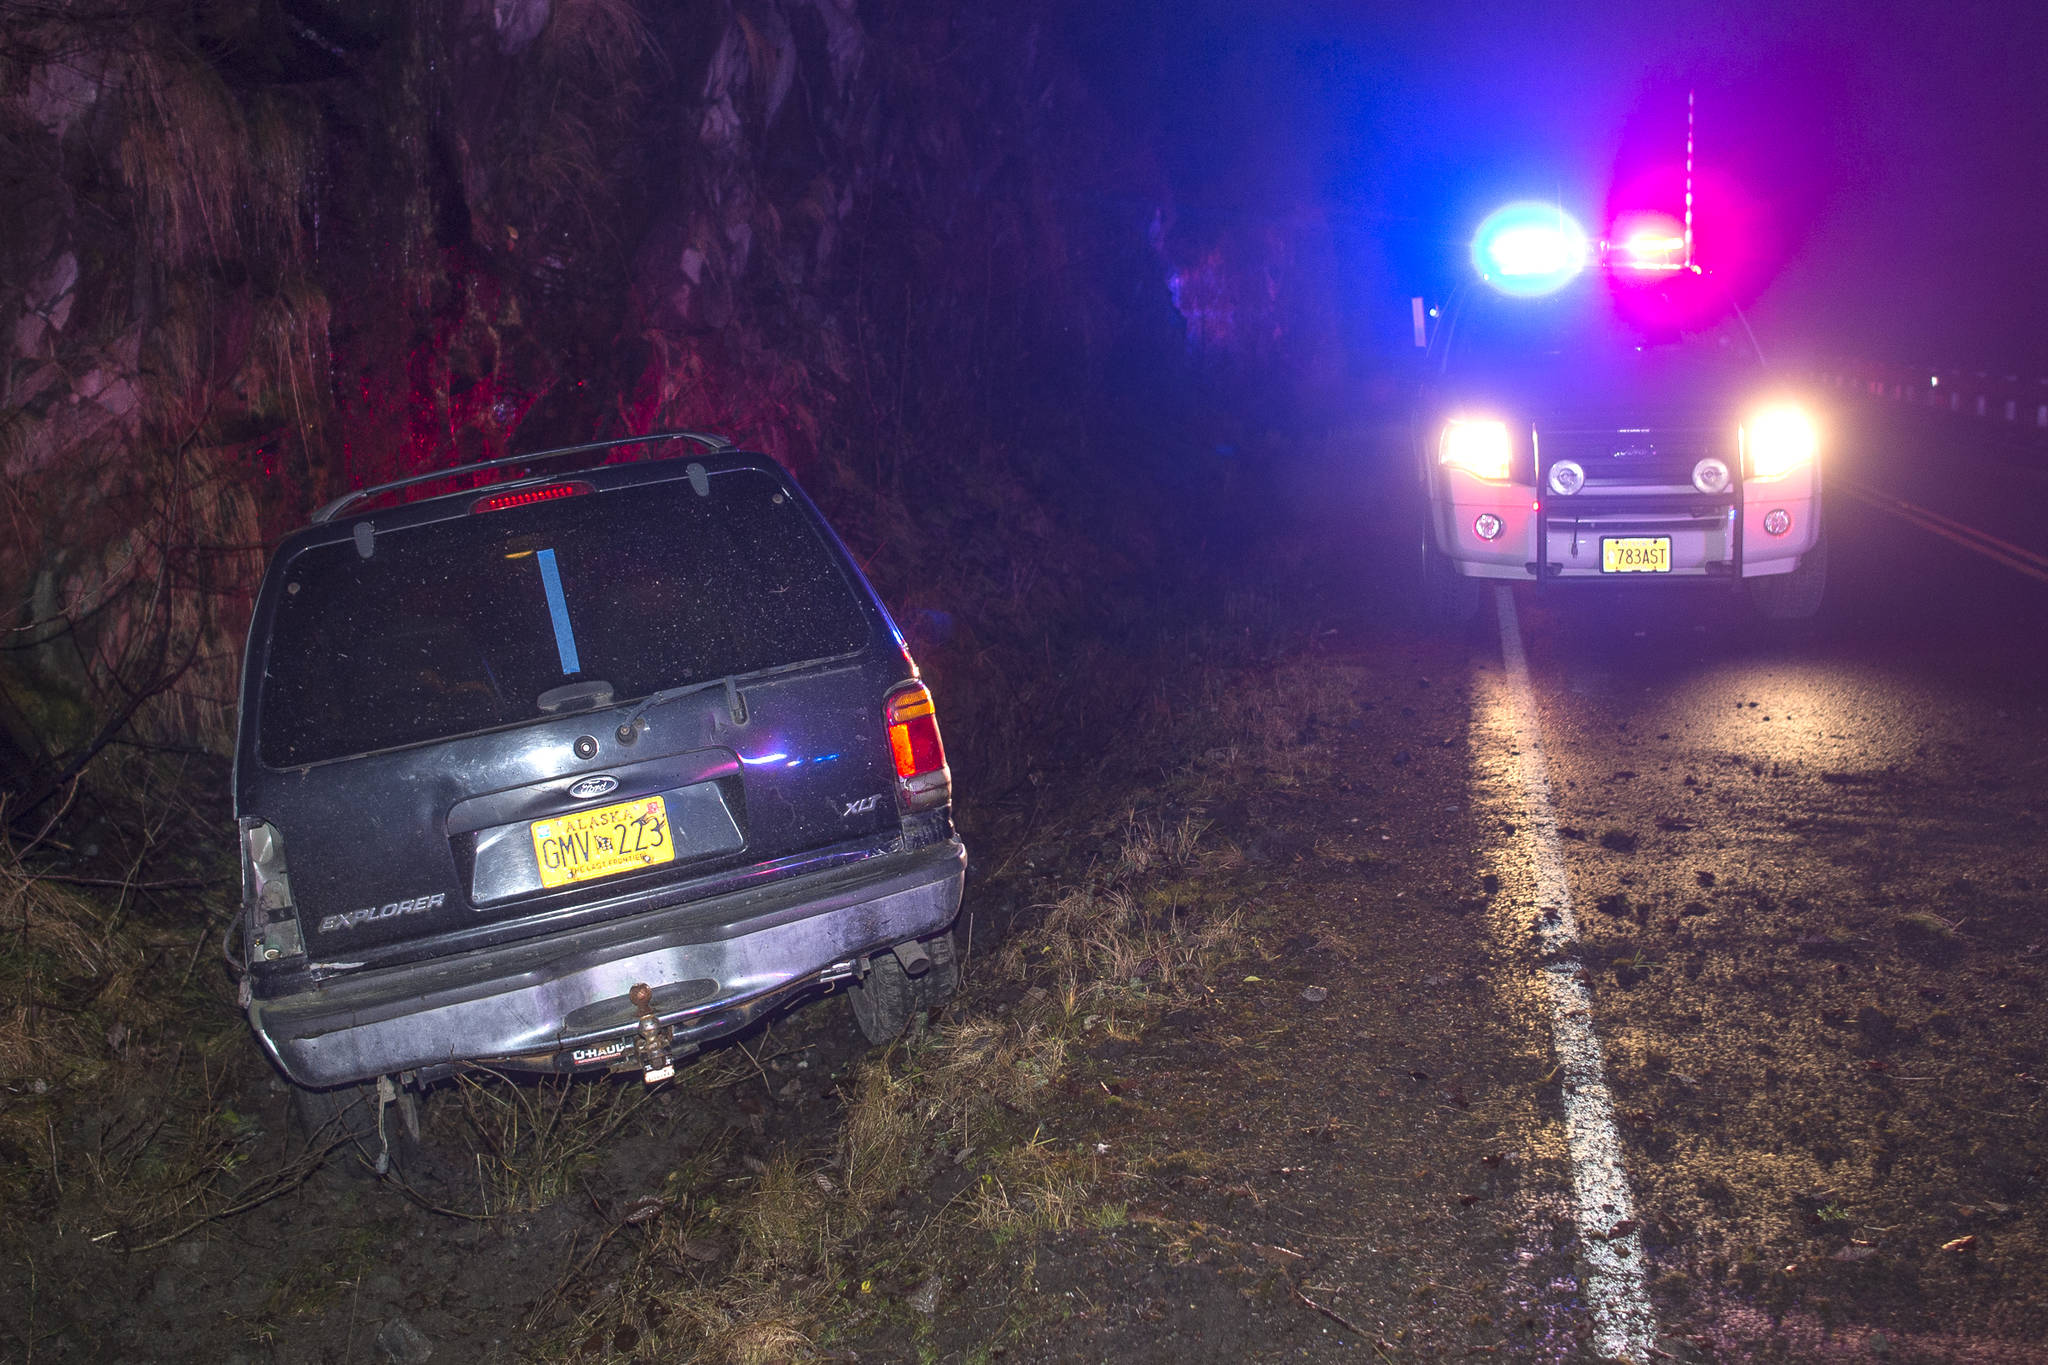 A vehicle sits in a ditch along Thane Road after the driver fell asleep on Tuesday, Nov. 27, 2018. The driver was taken to Bartlett Regional Hospital. (Michael Penn | Juneau Empire)